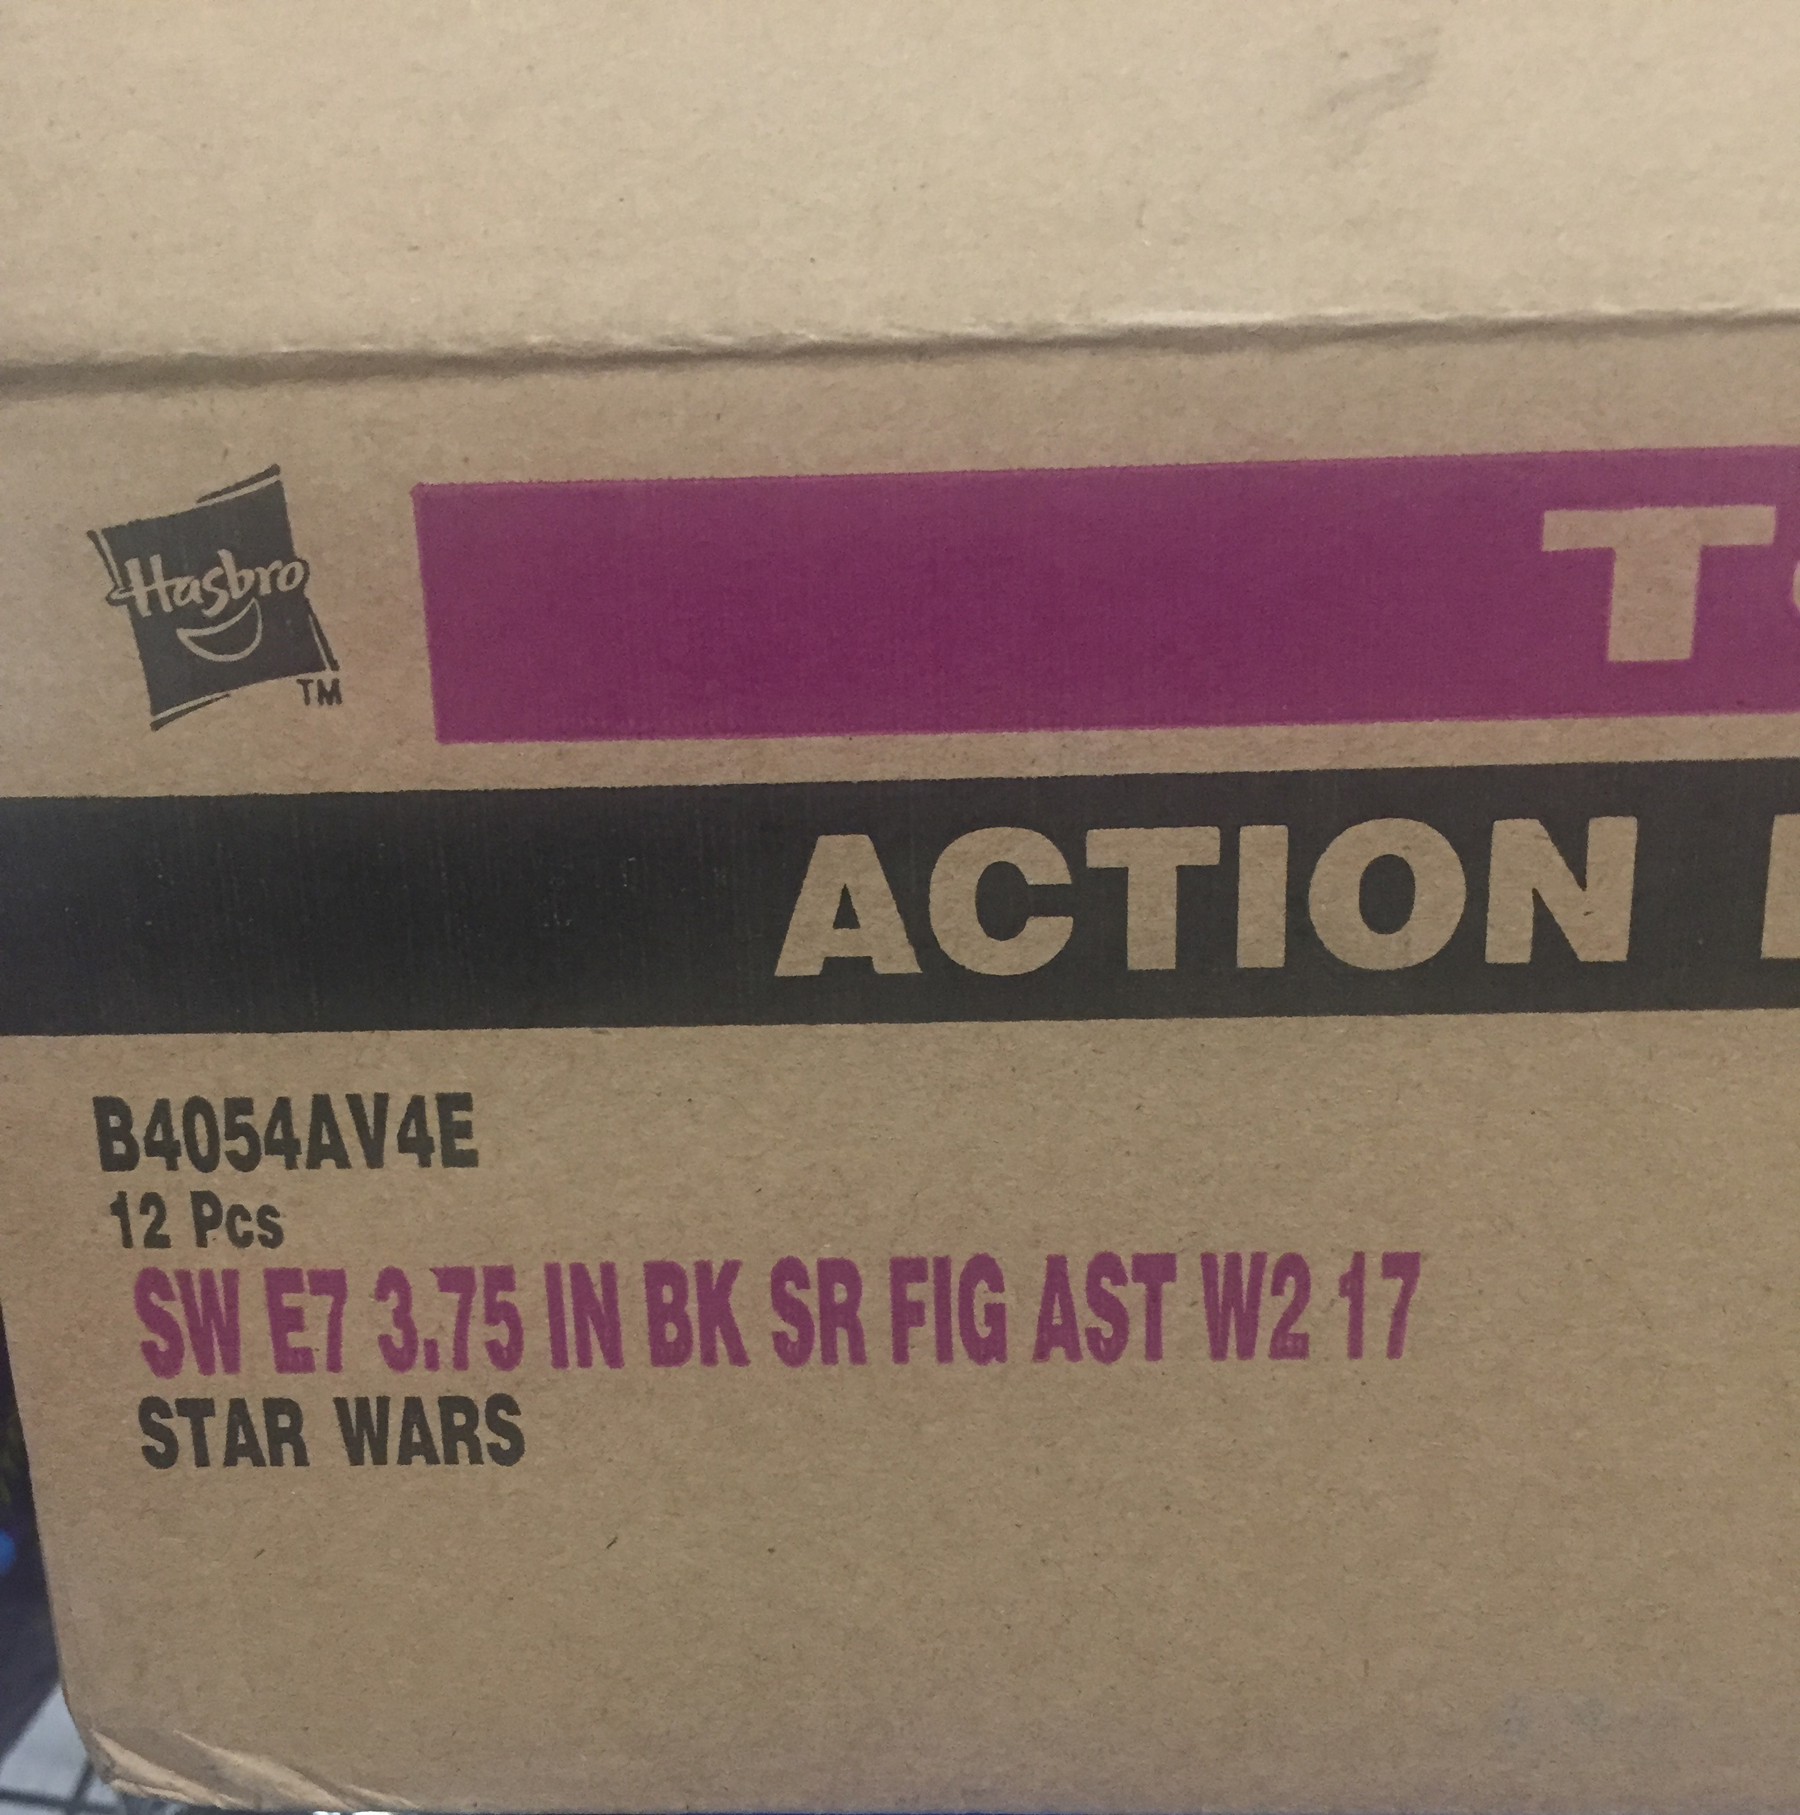 A Star Wars Toys Collectibles Resource Bott Funko Pop Sw Tlj Porg Found Latest Wave Of Tbs P3 375 Super Articulated Figures